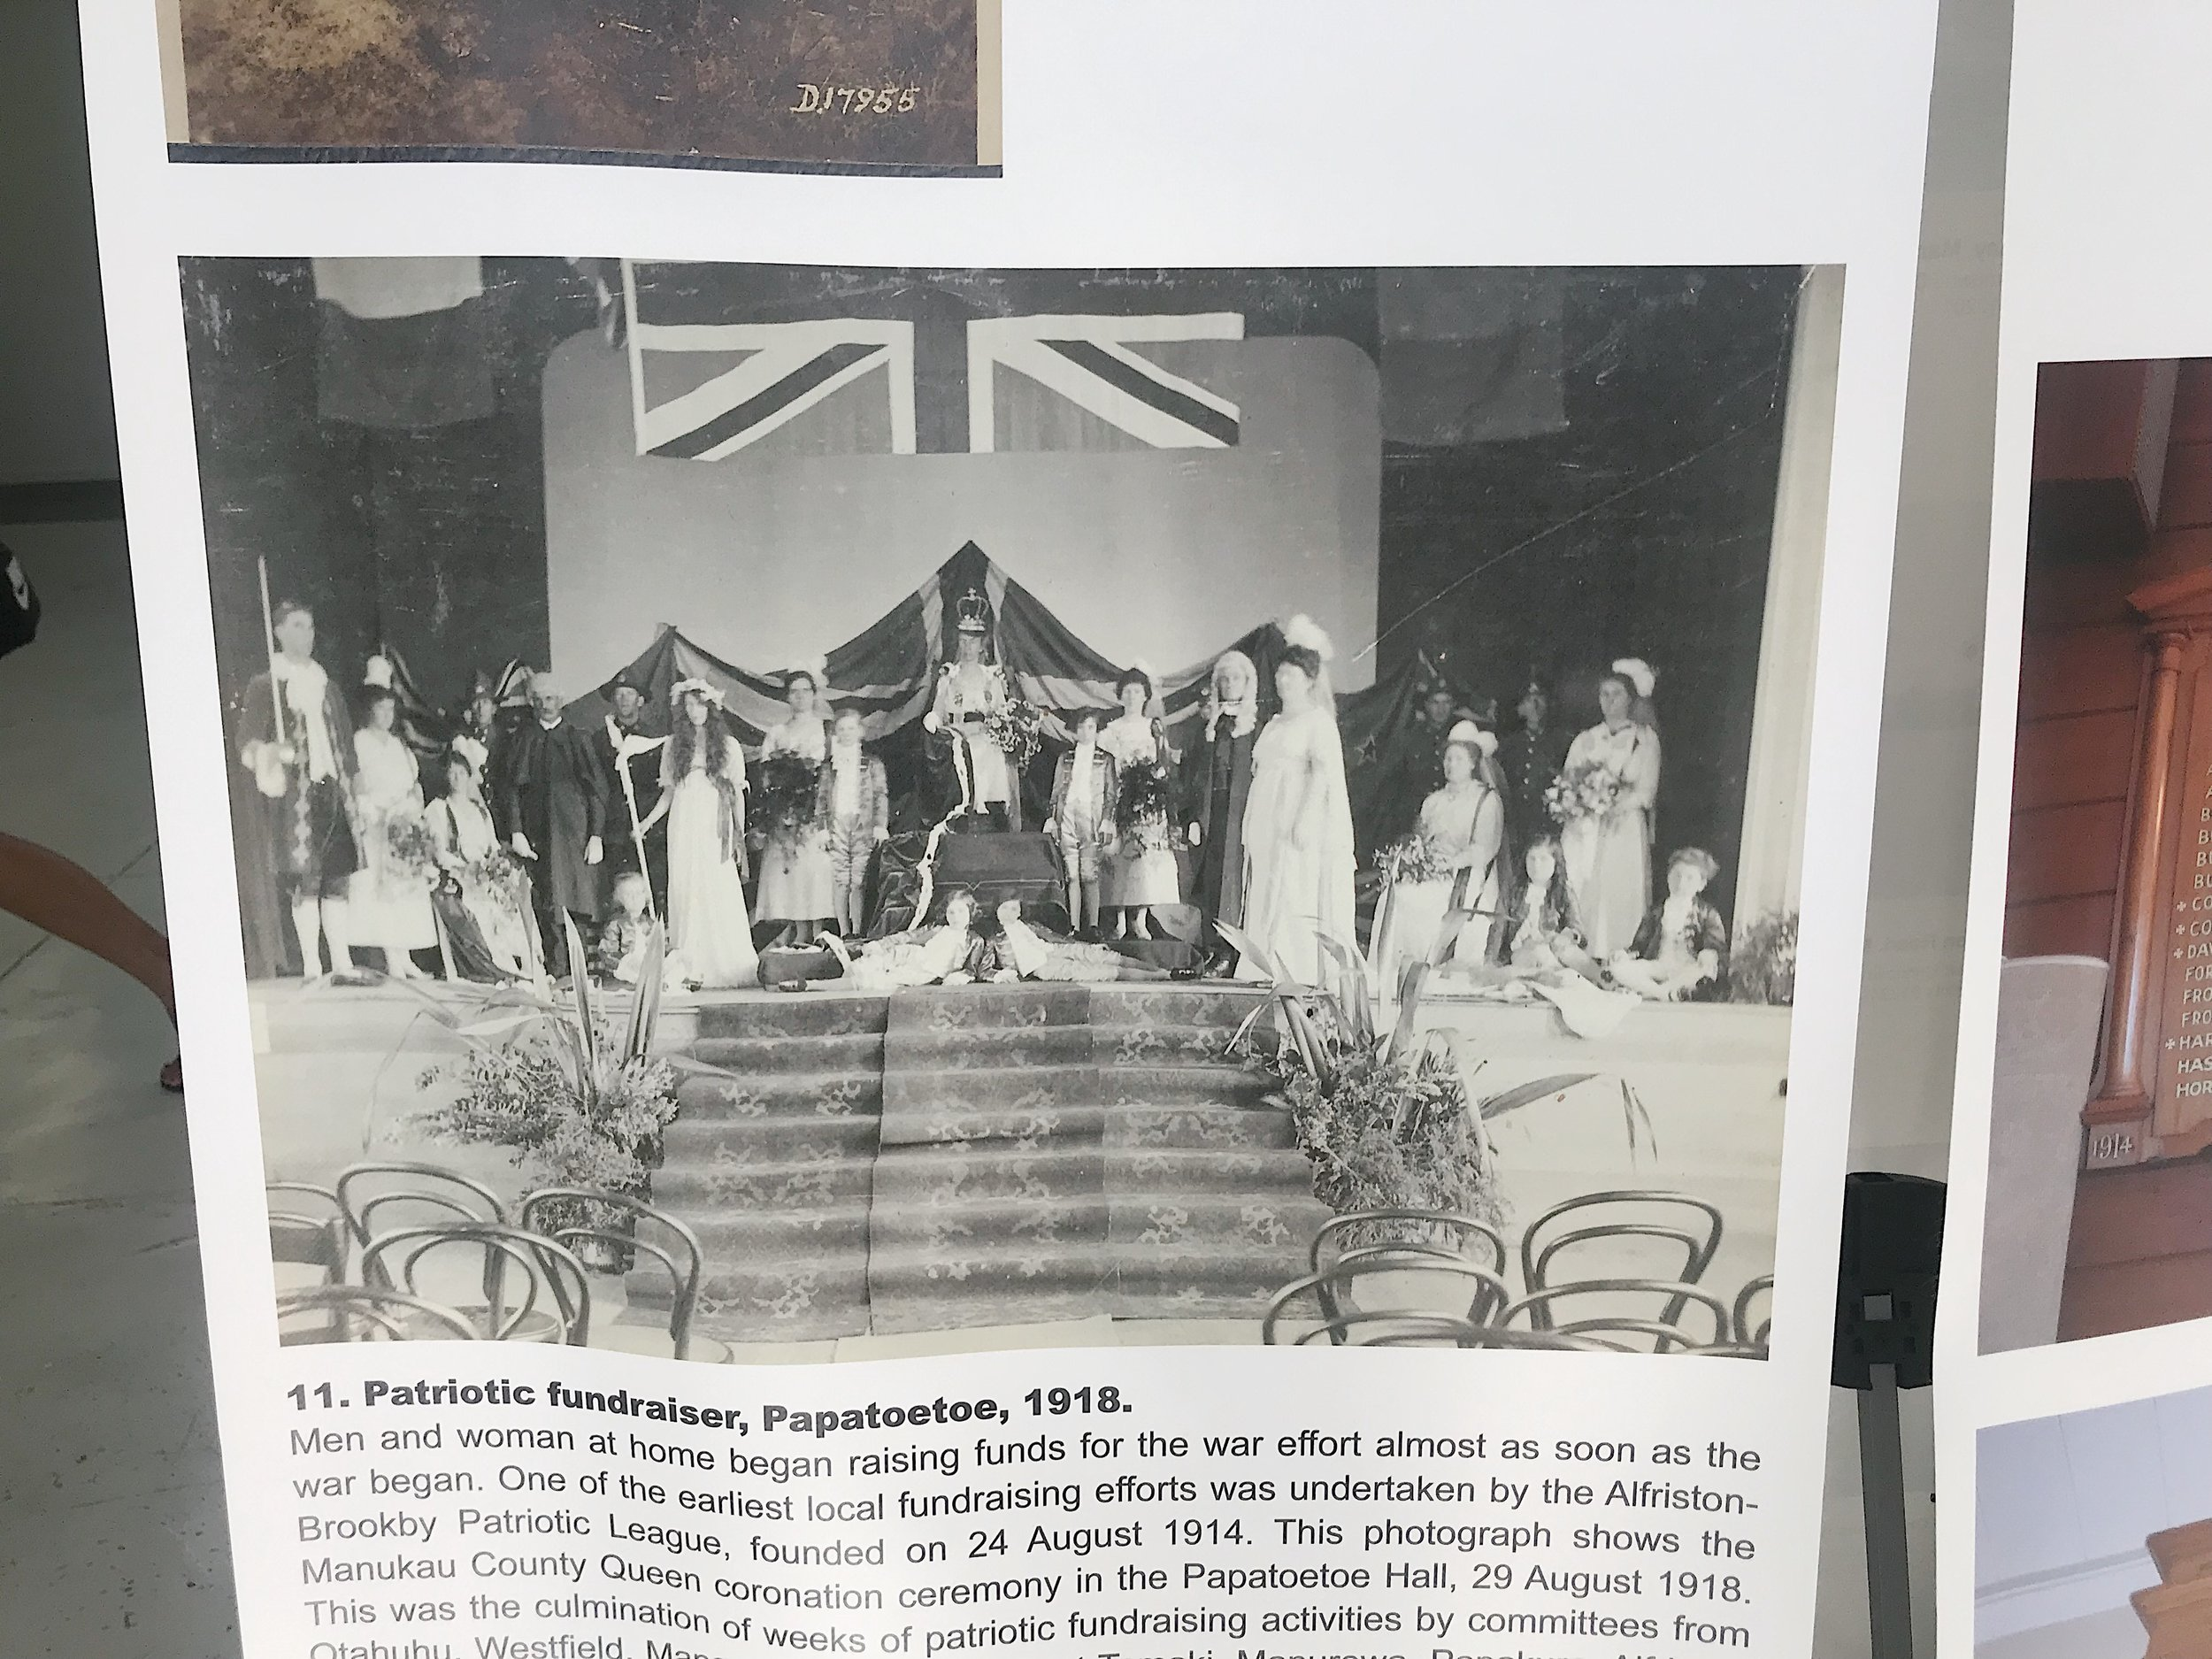 This was one of my favourites: a 'patriotic fundraiser' from the First World War in Papatoetoe, fit with the Union Jack, a pretend Queen of England, and all her royal subjects. I'm sure this one really inspired the mana whenua to support the war effort…